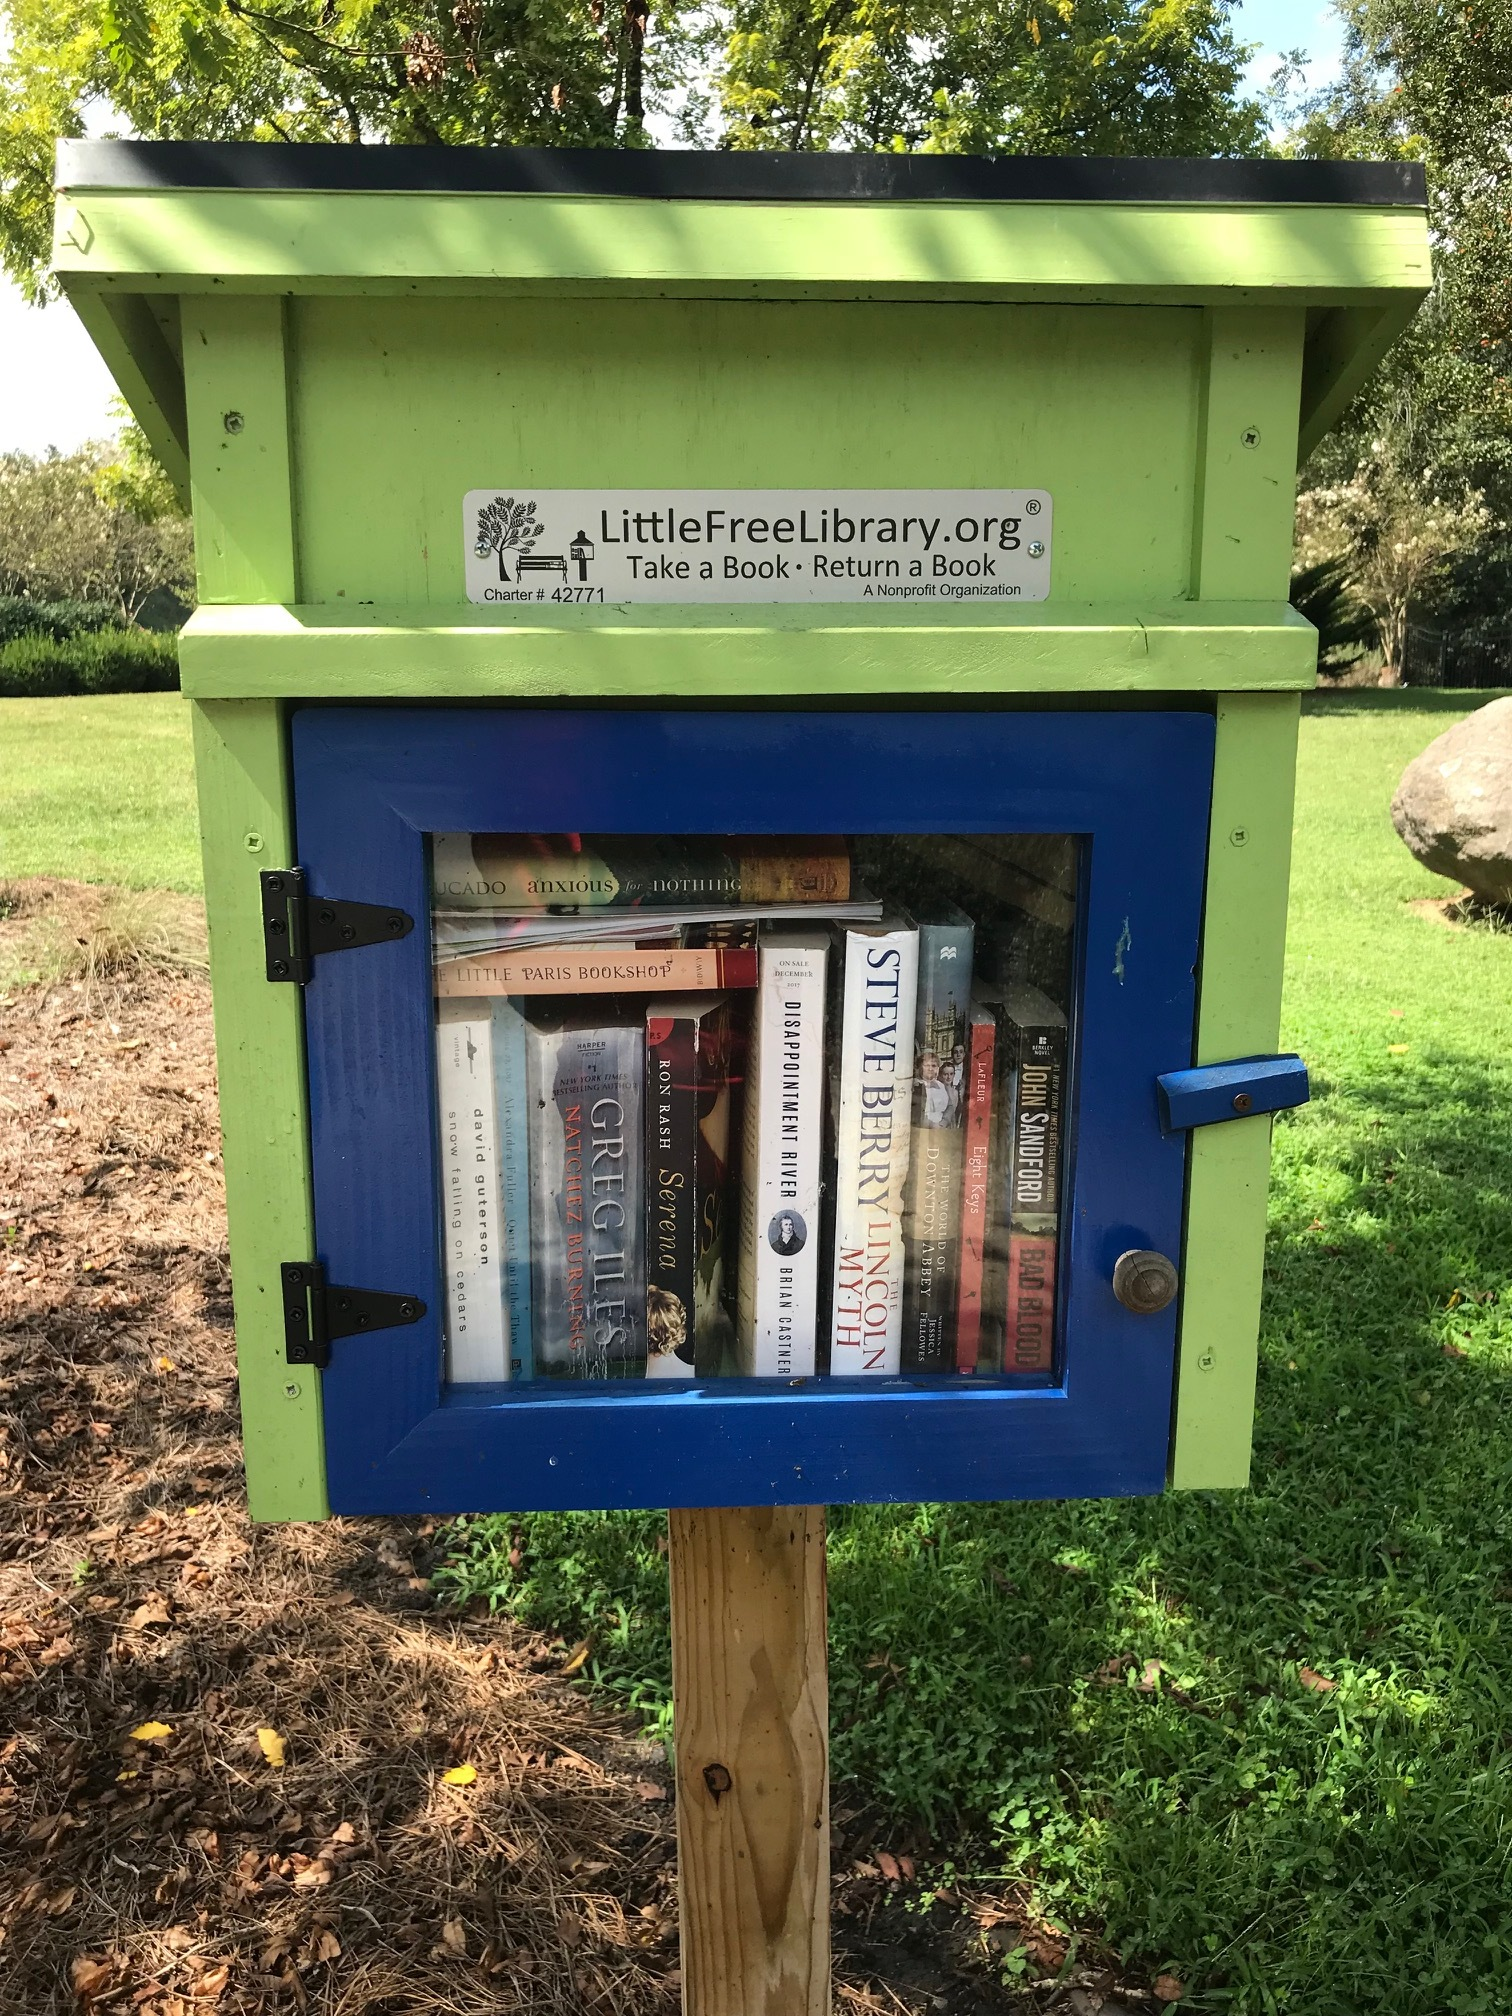 Julie Tippett's Little Free Library was a Christmas gift. Photo by Cyma Shapiro